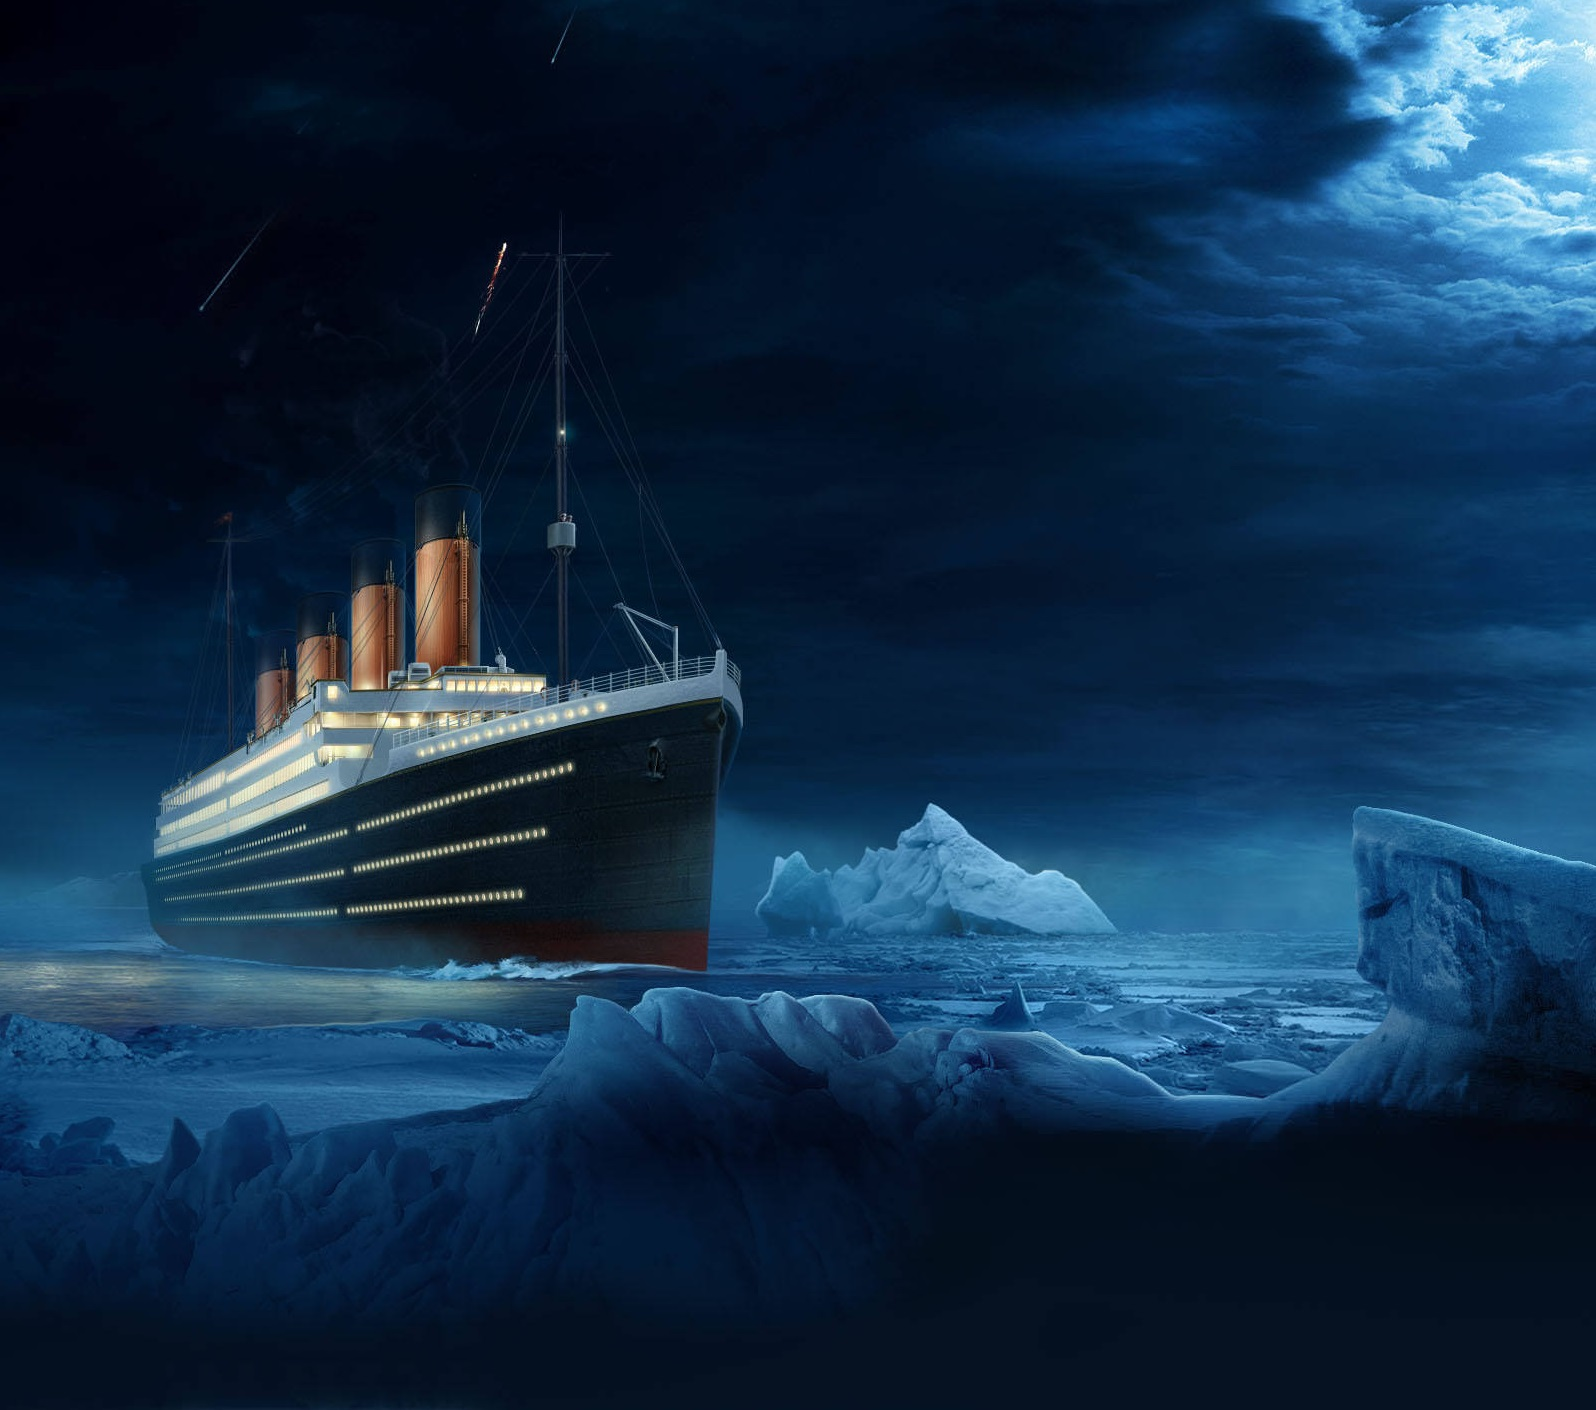 Titanic: Honour & Glory